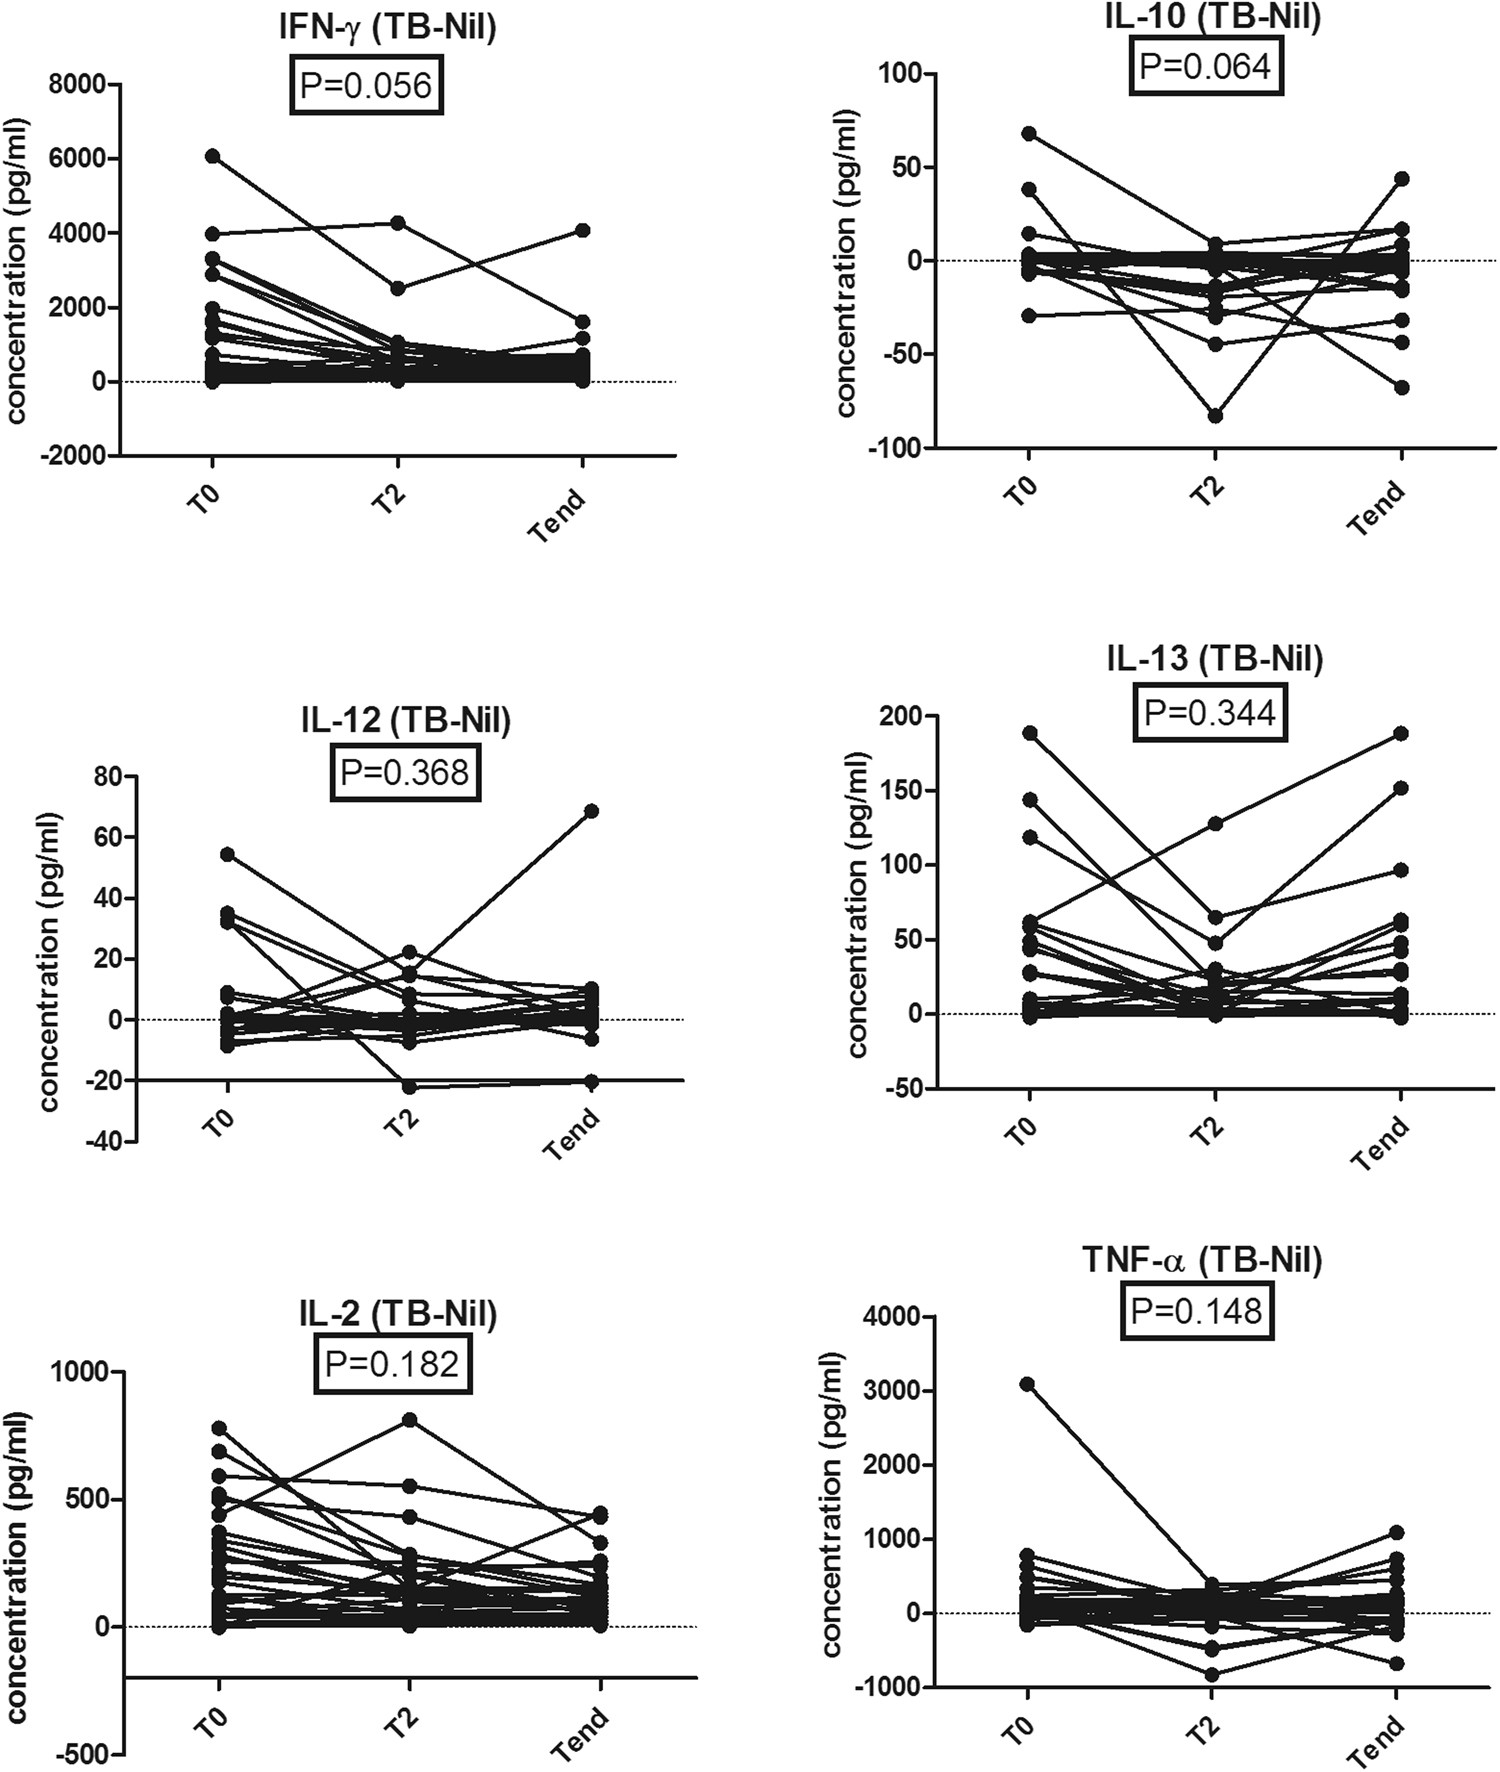 Changes In Cytokine Responses To Tb Antigens Esat 6 Cfp 10 And Tb